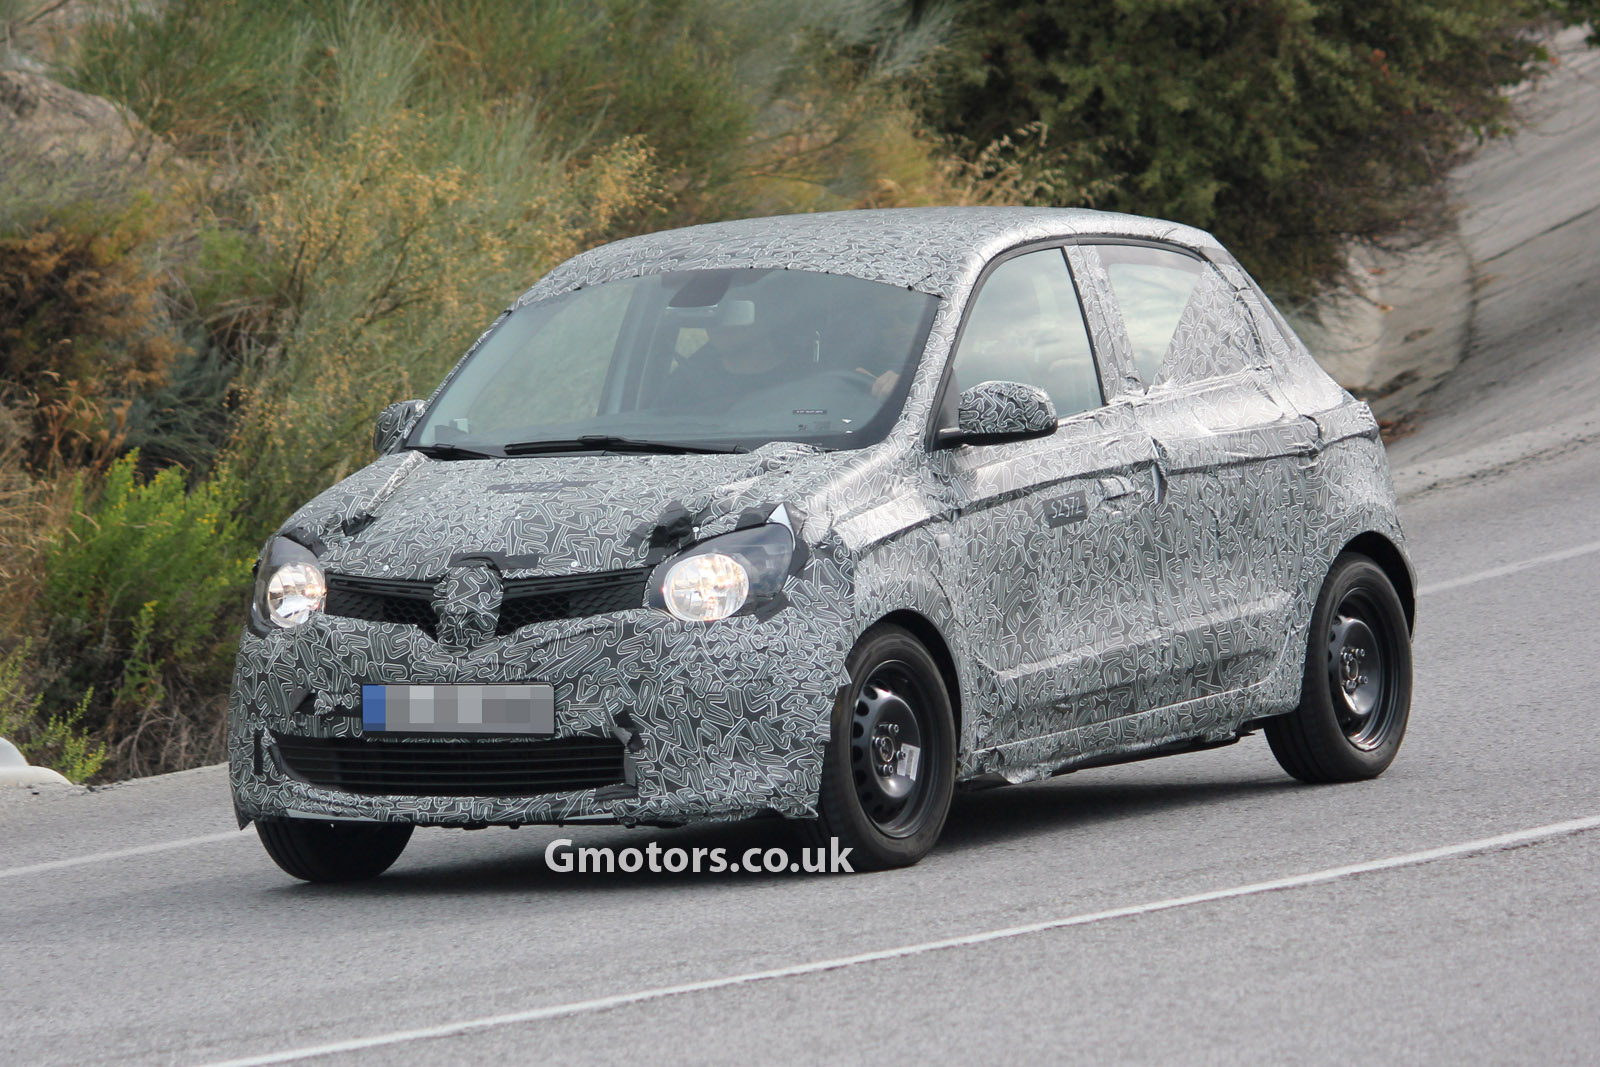 2015 renault twingo 5 door spied for the first time looks like twin run concept. Black Bedroom Furniture Sets. Home Design Ideas